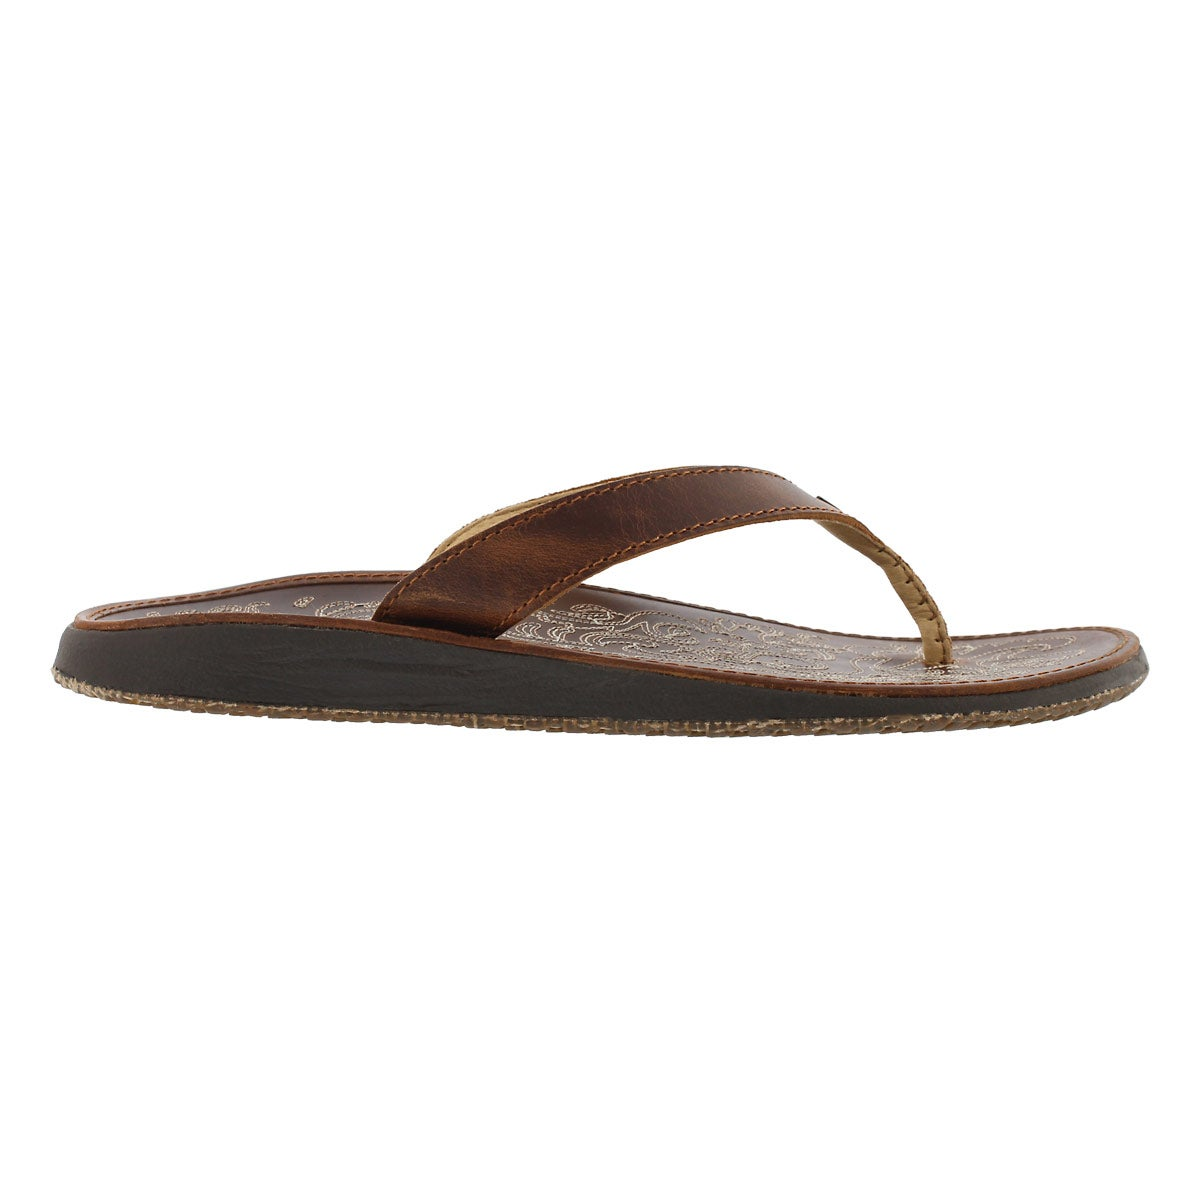 Lds Paniolo natural thong sandal